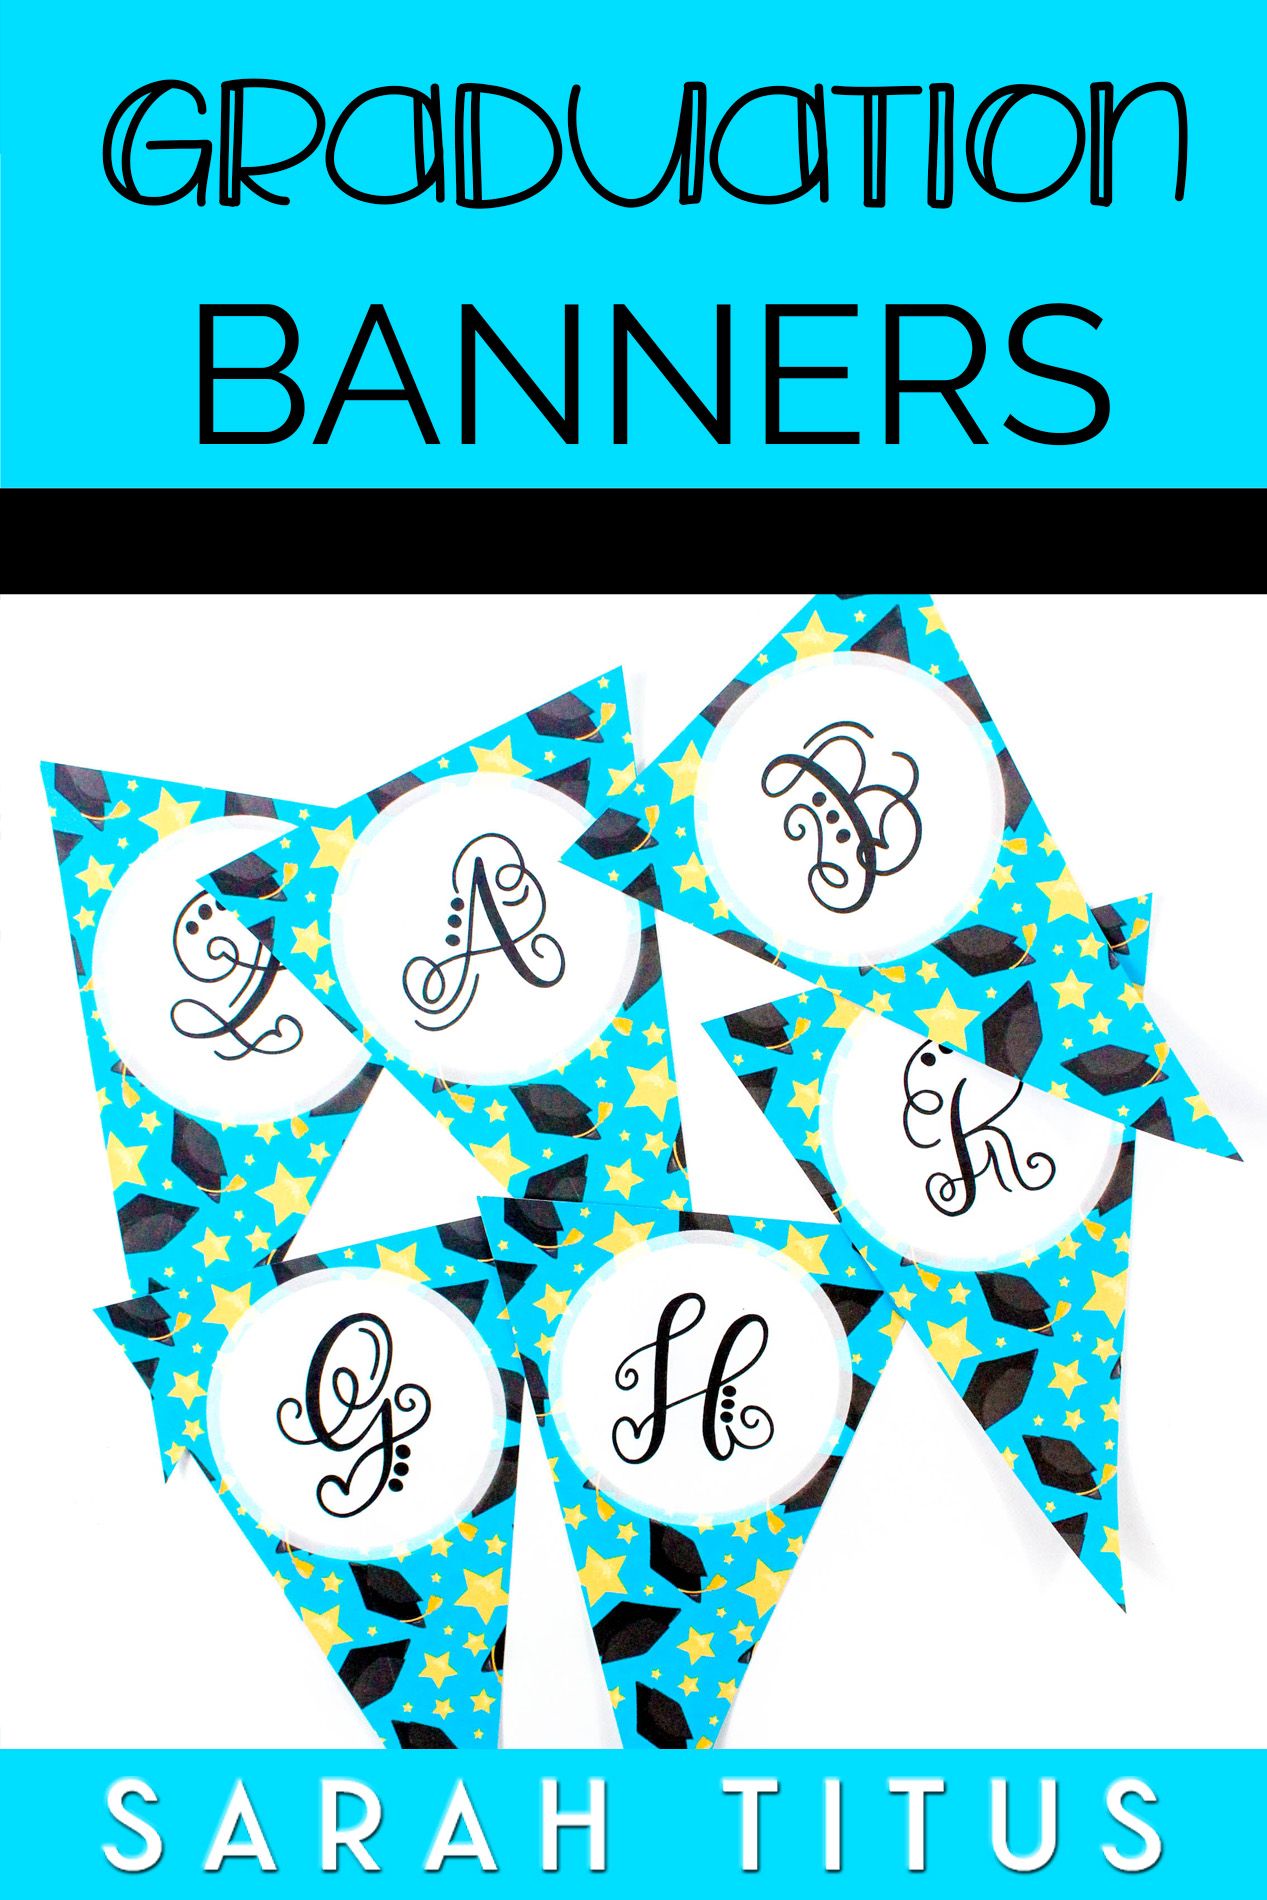 You have a wonderful graduate, and you want to celebrate their hard work. These festive free printable graduation banners will help you do just that! #freeprintables #printables #graduation #graduationdecorations #graduationprintables